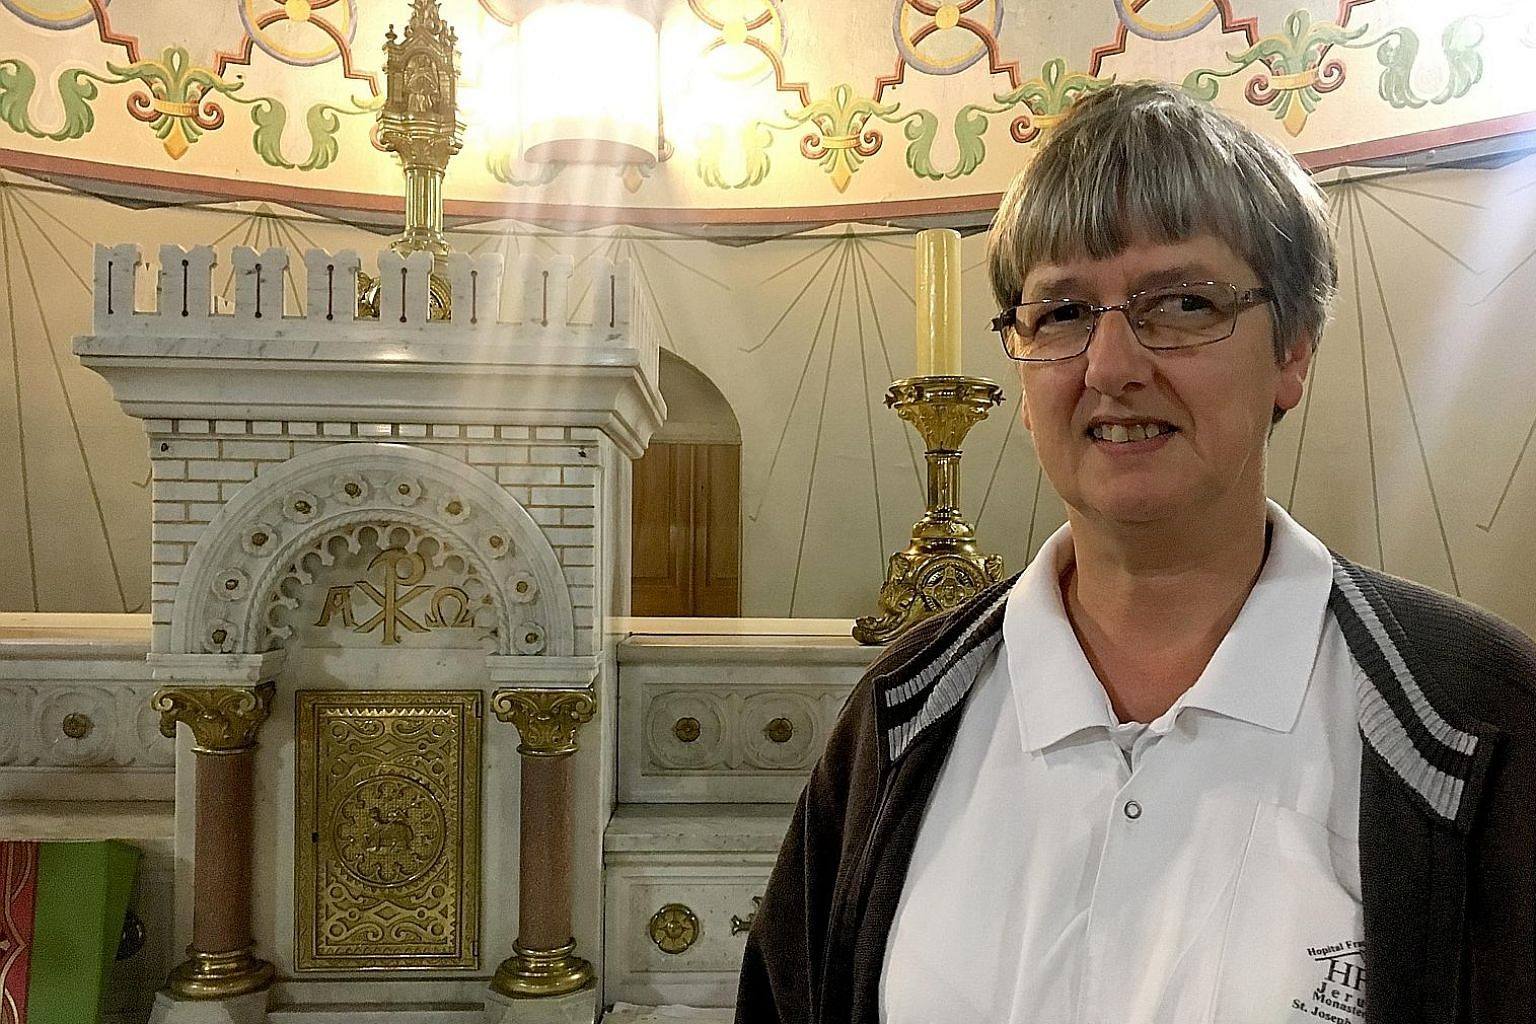 Sister Monika Dullmann says there are no tensions between Muslims and Jews at the Jerusalem hospice where she works. Palestinians from Ramallah work together with Israeli settlers, ultra-Orthodox Shoah survivors are cared for by German volunteers.